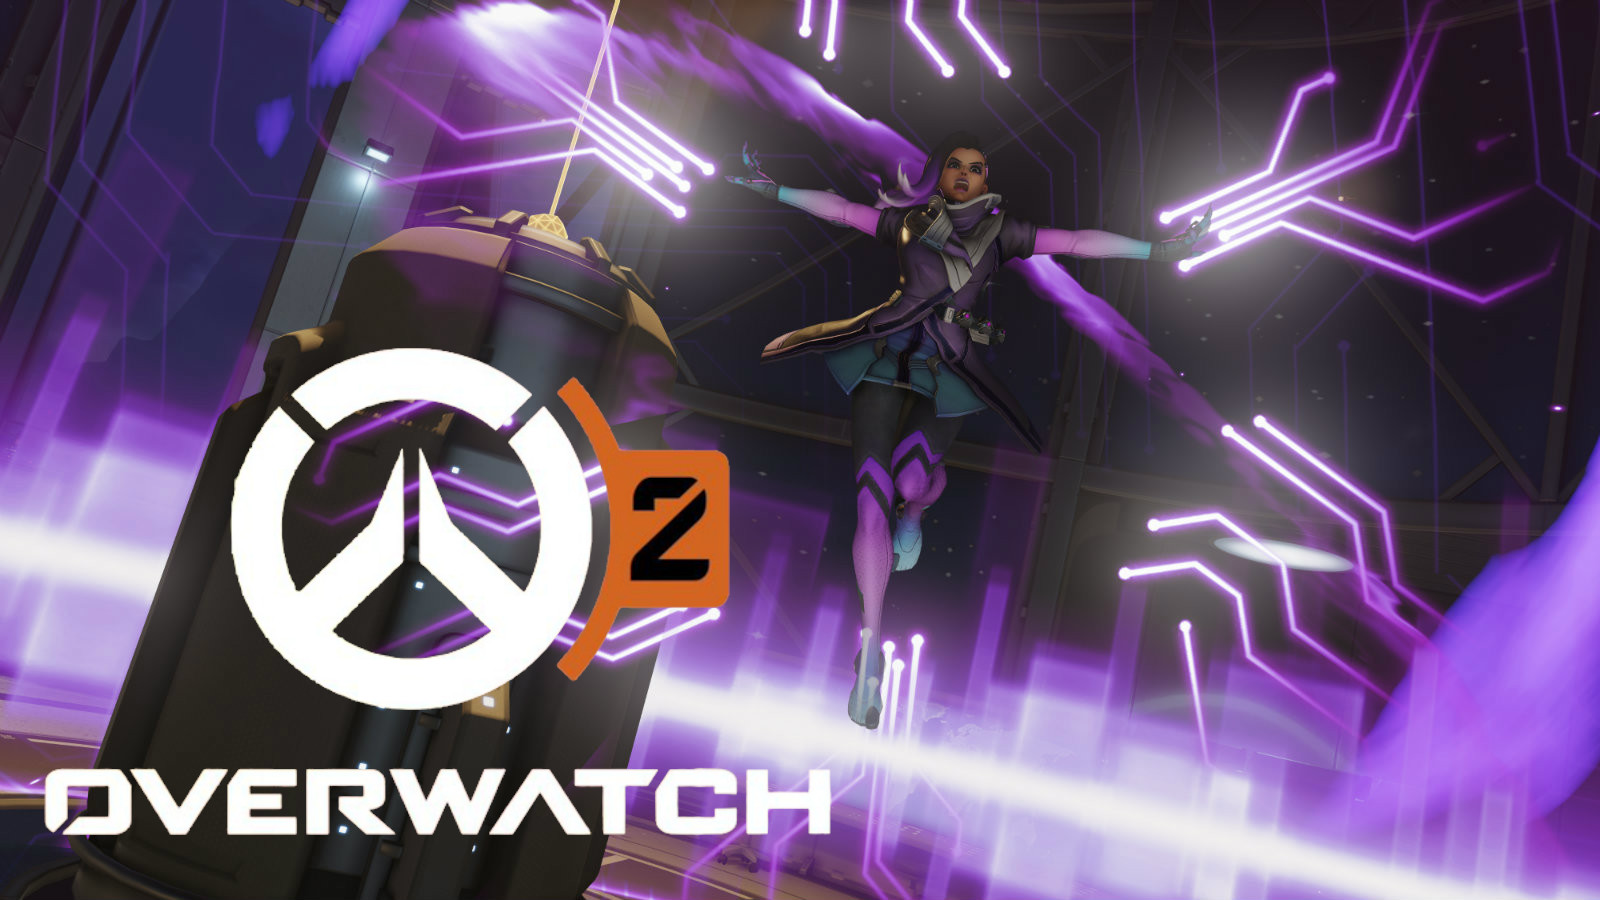 Sombra activates EMP in Overwatch 2